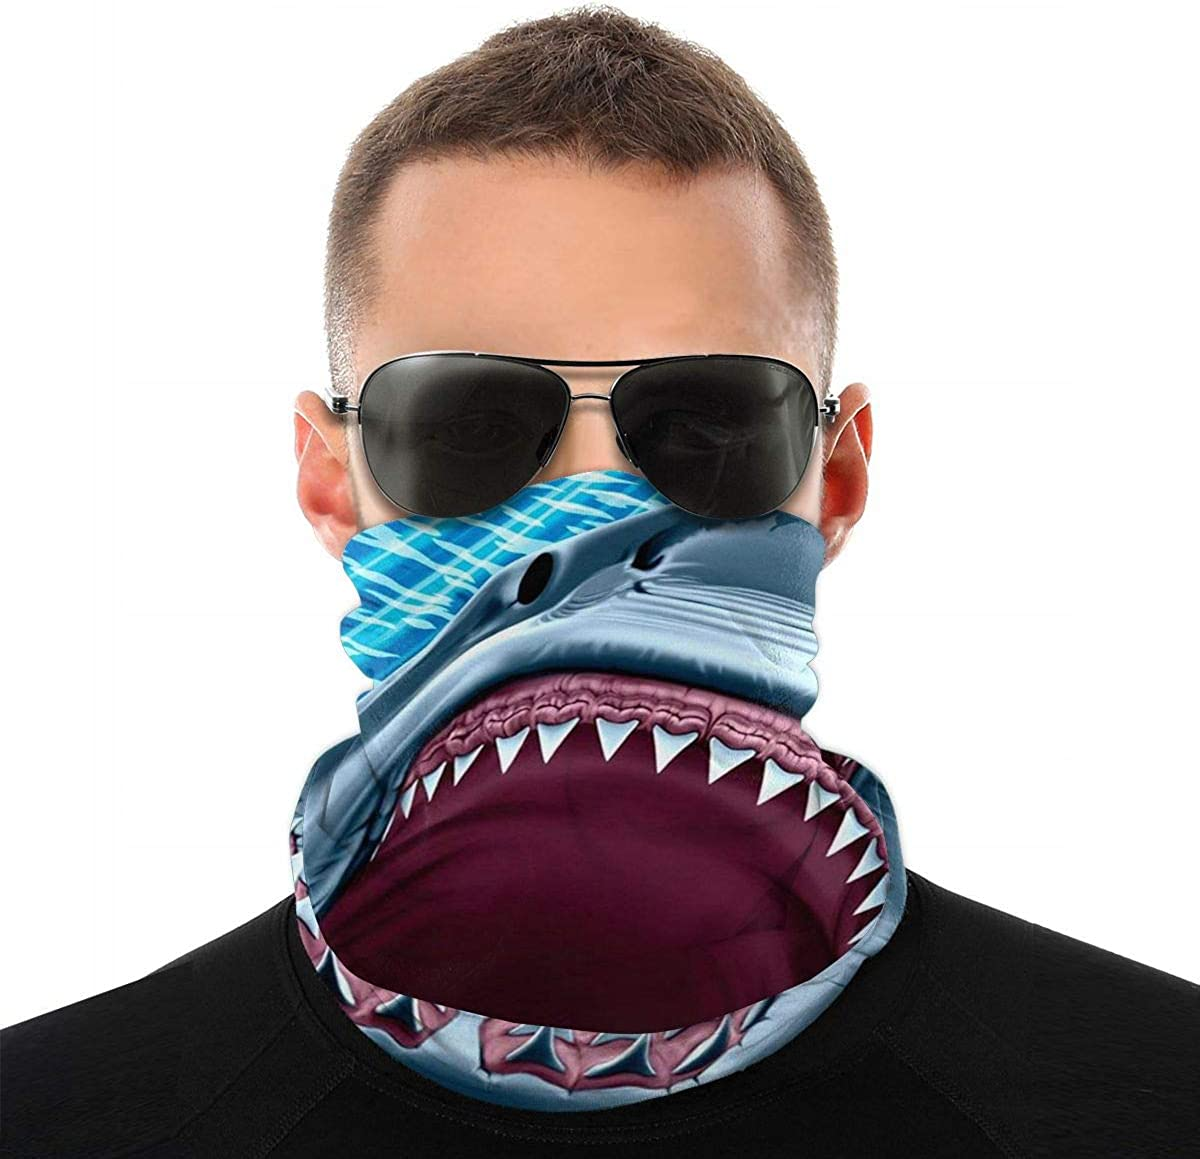 Seamless Neck Gaiter Tube - Long Great White Shark Teeth Bandanas/Balaclava Windproof Face Mask & Headband For Dust, Outdoors, Festivals, Sports